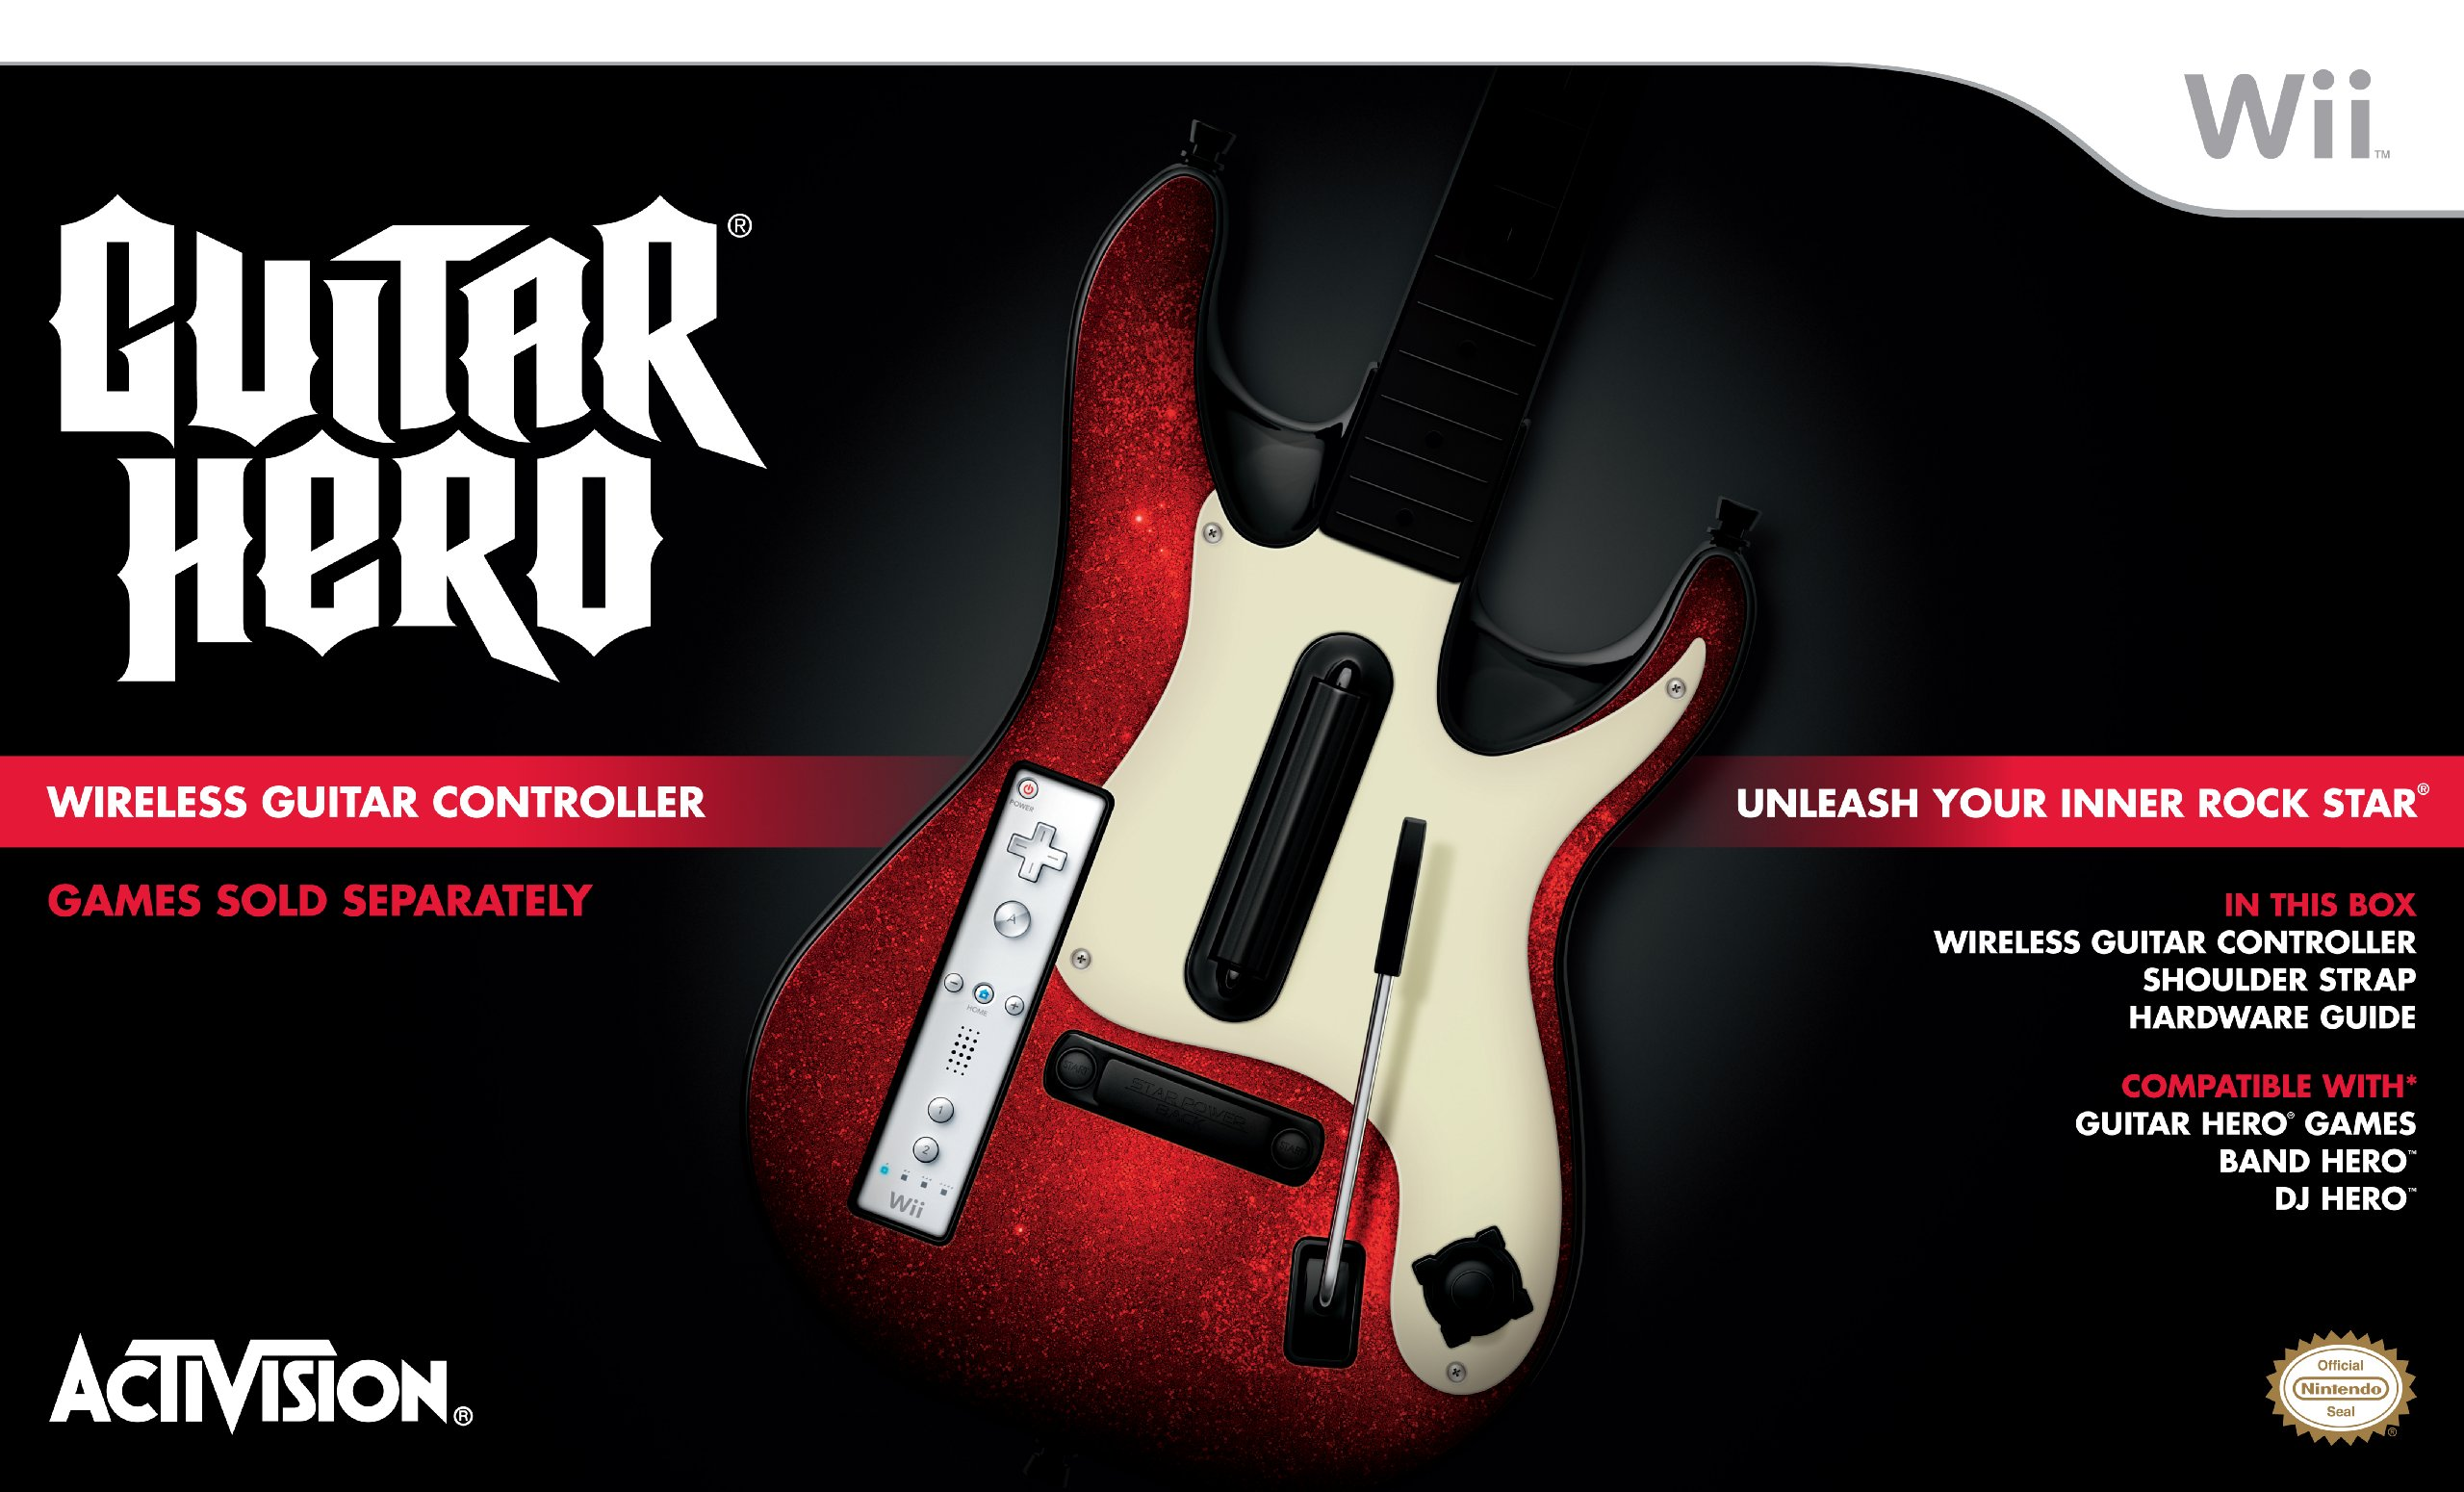 wii guitar hero 5 stand alone guitar 0047875960718 buy new and used video gameses books and. Black Bedroom Furniture Sets. Home Design Ideas